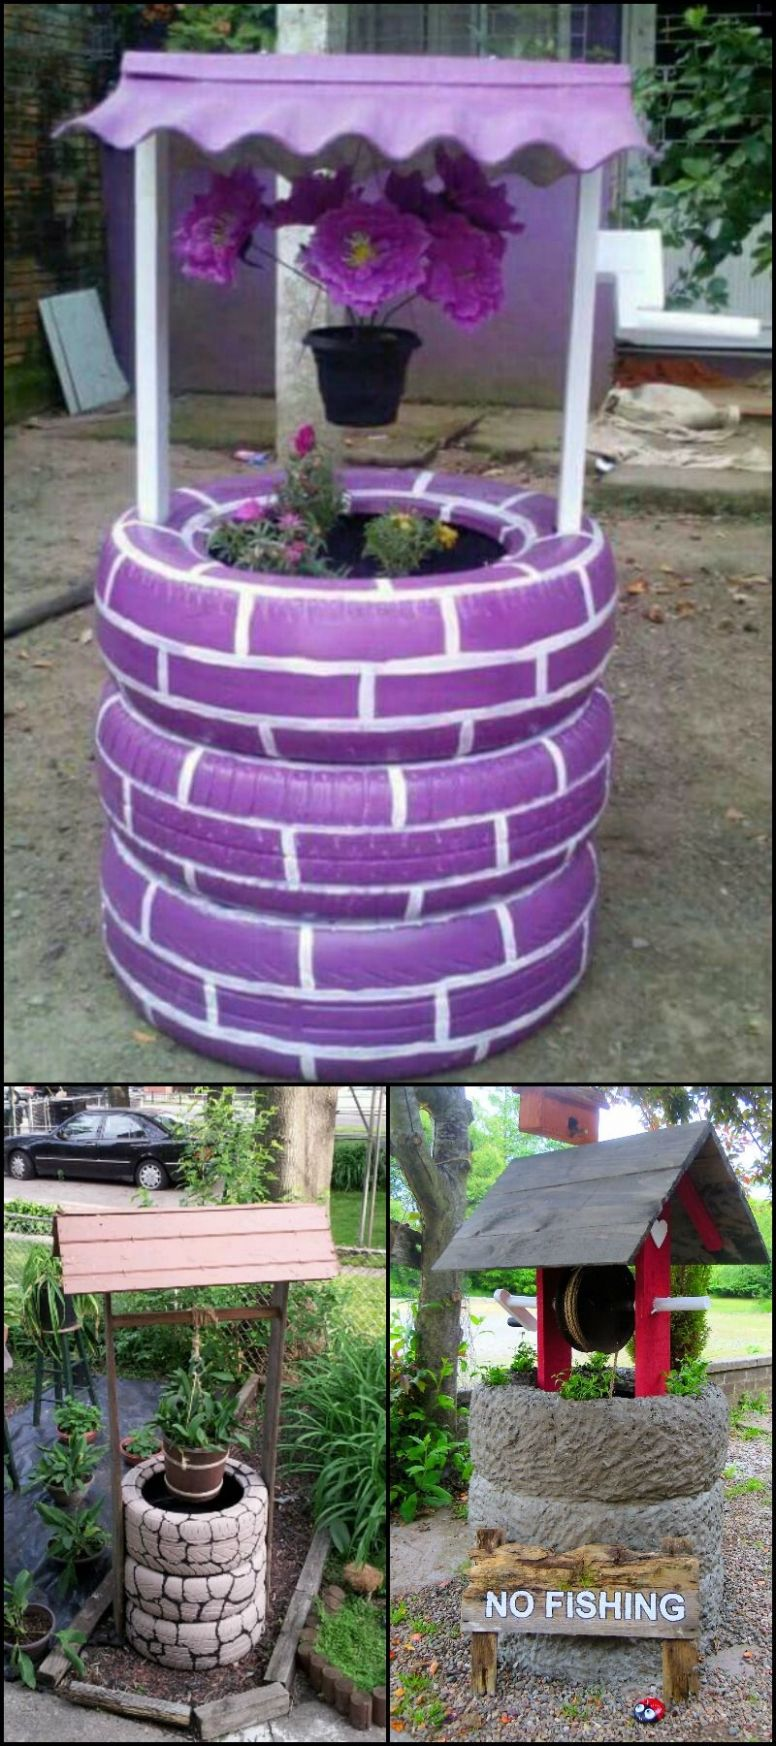 Wishing well planter made from recycled tires | Diy gartenprojekte ..